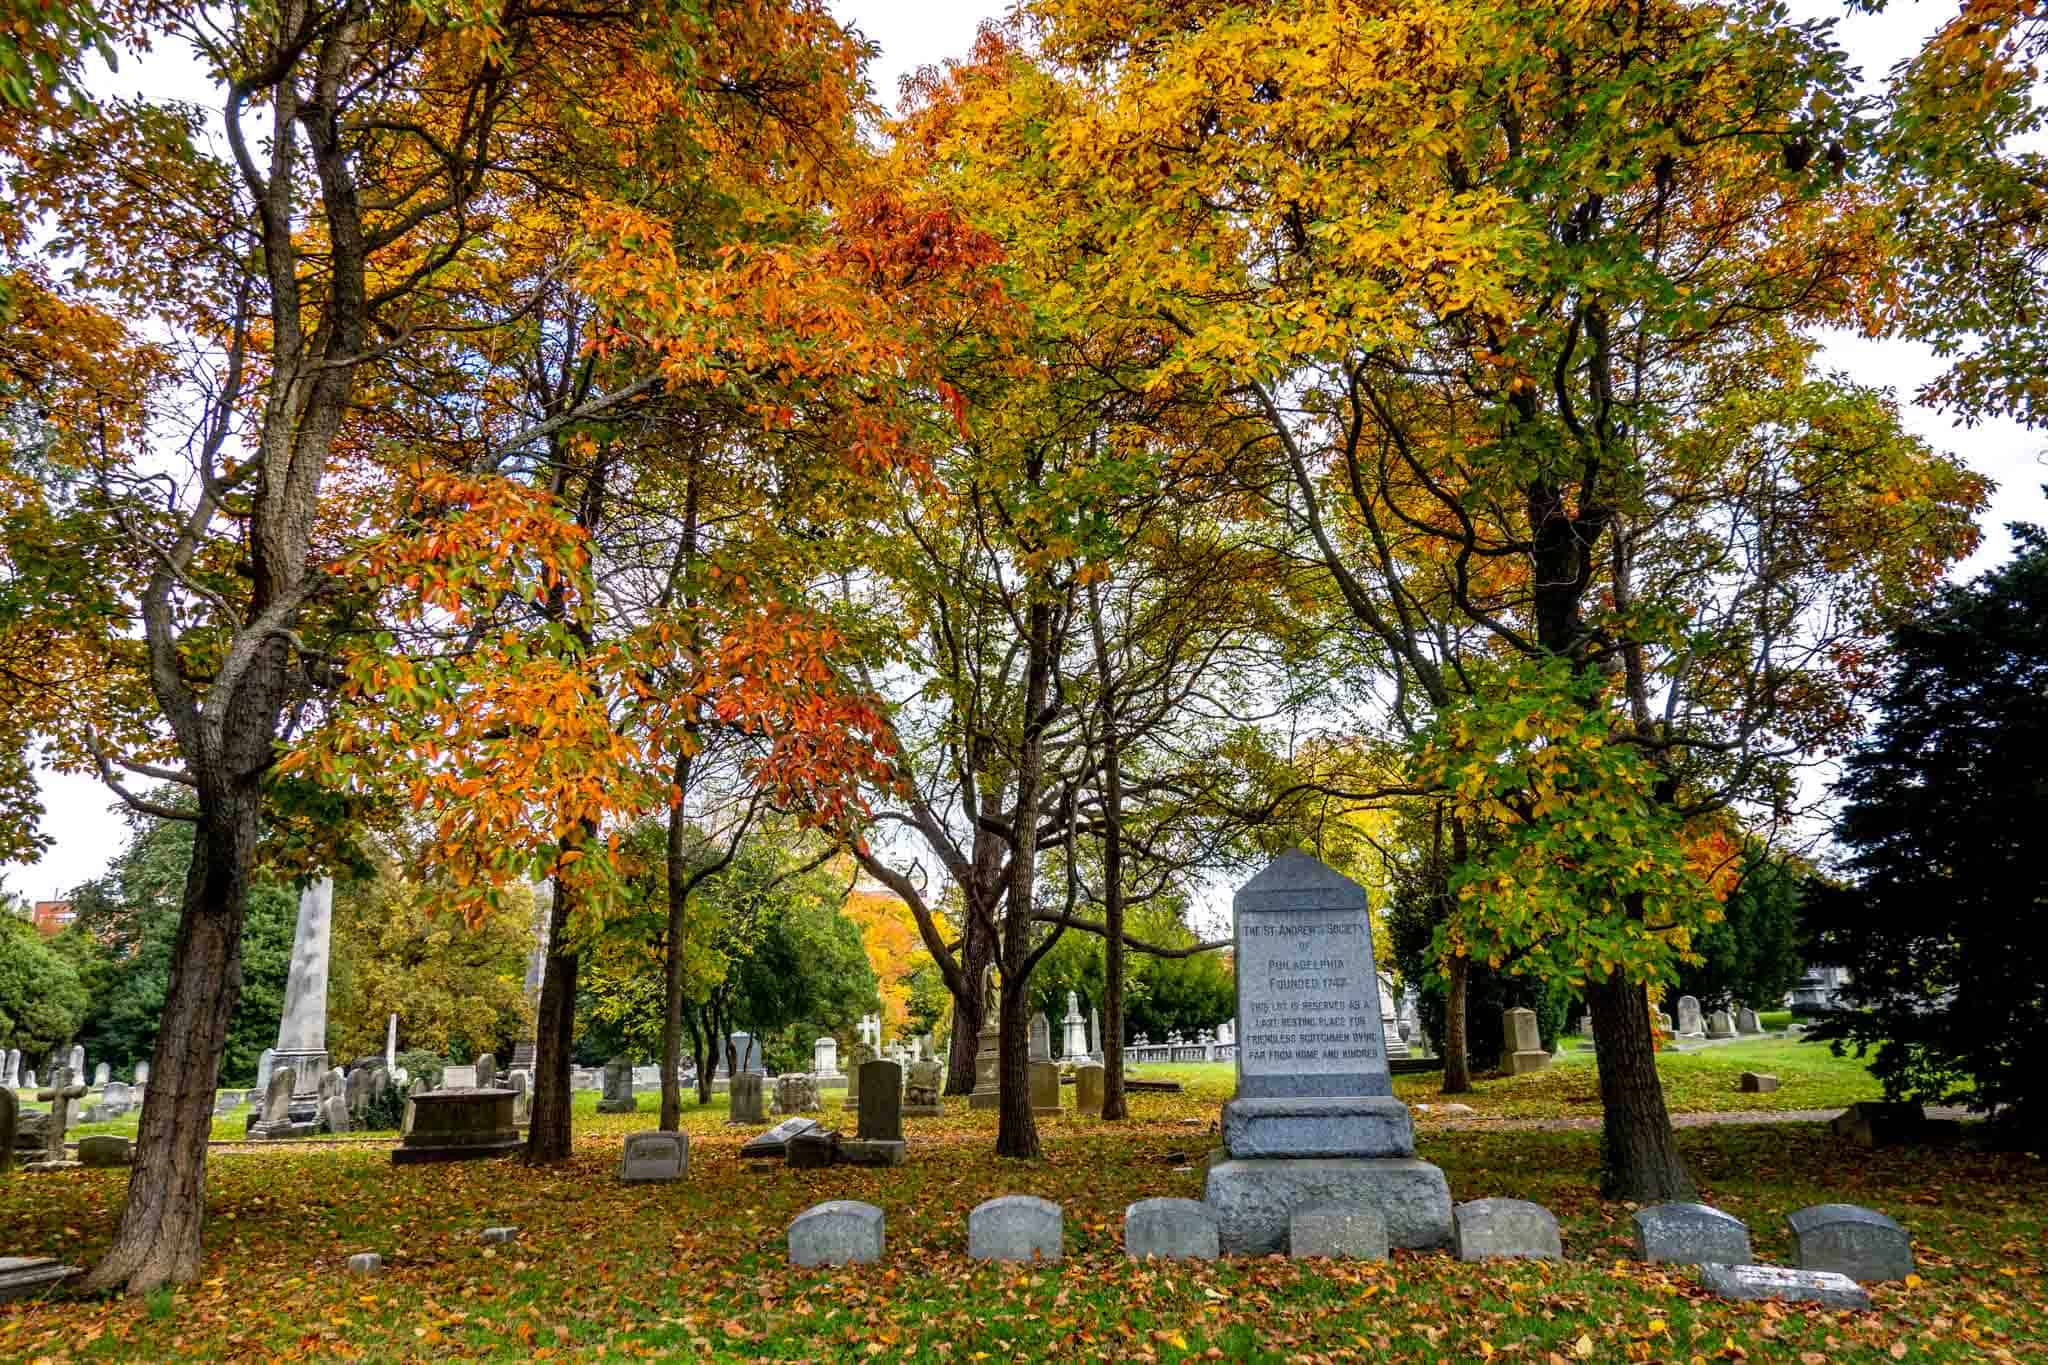 Bright fall foliage over gravestones